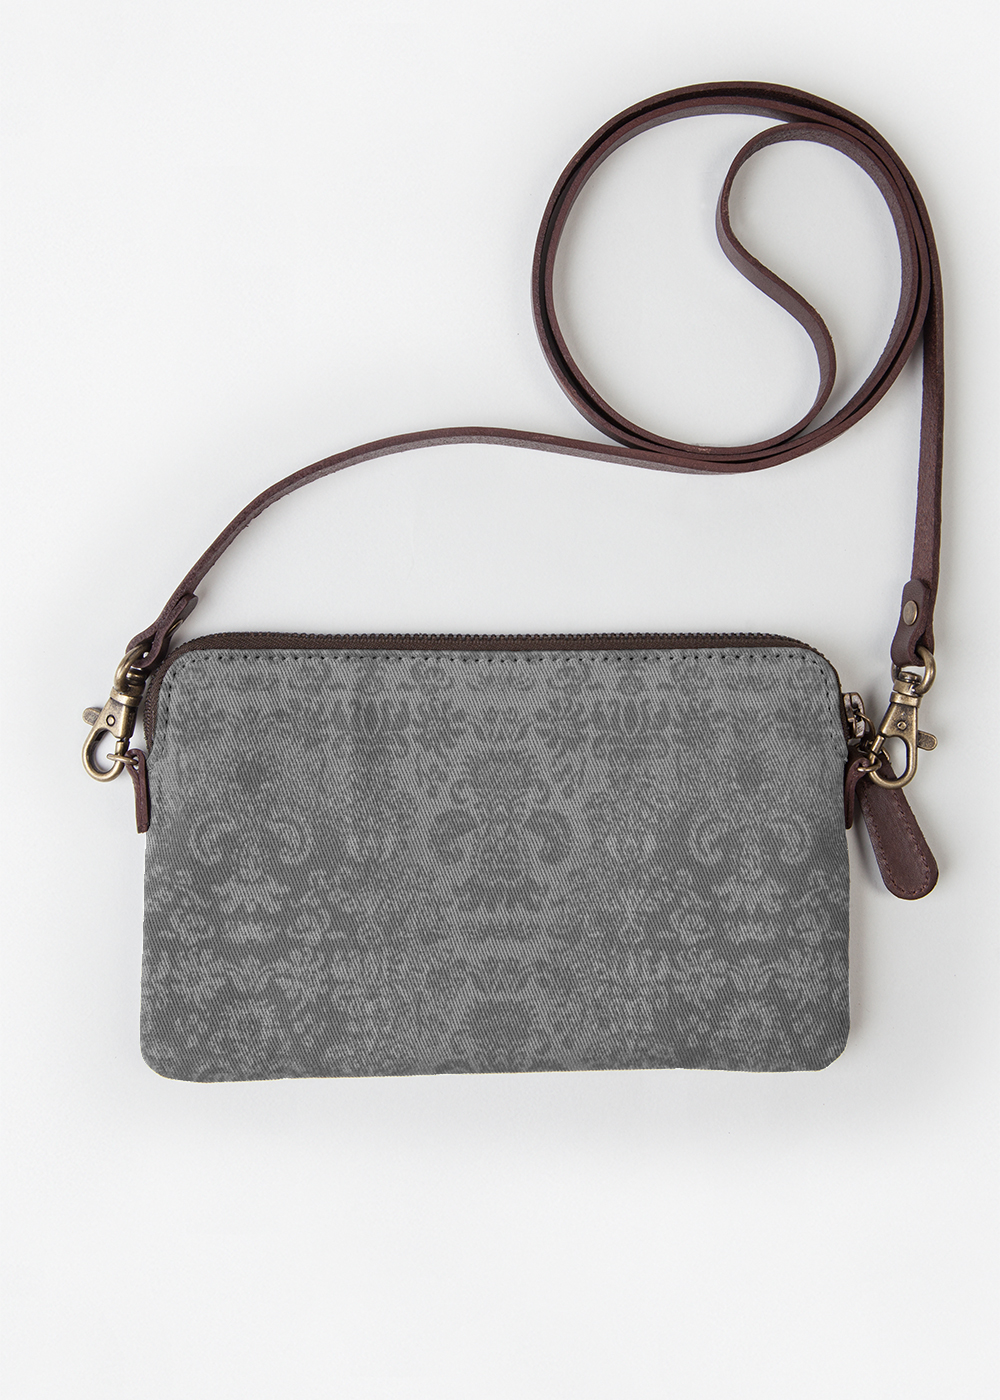 VIDA Statement Bag - sophisticated bag by VIDA